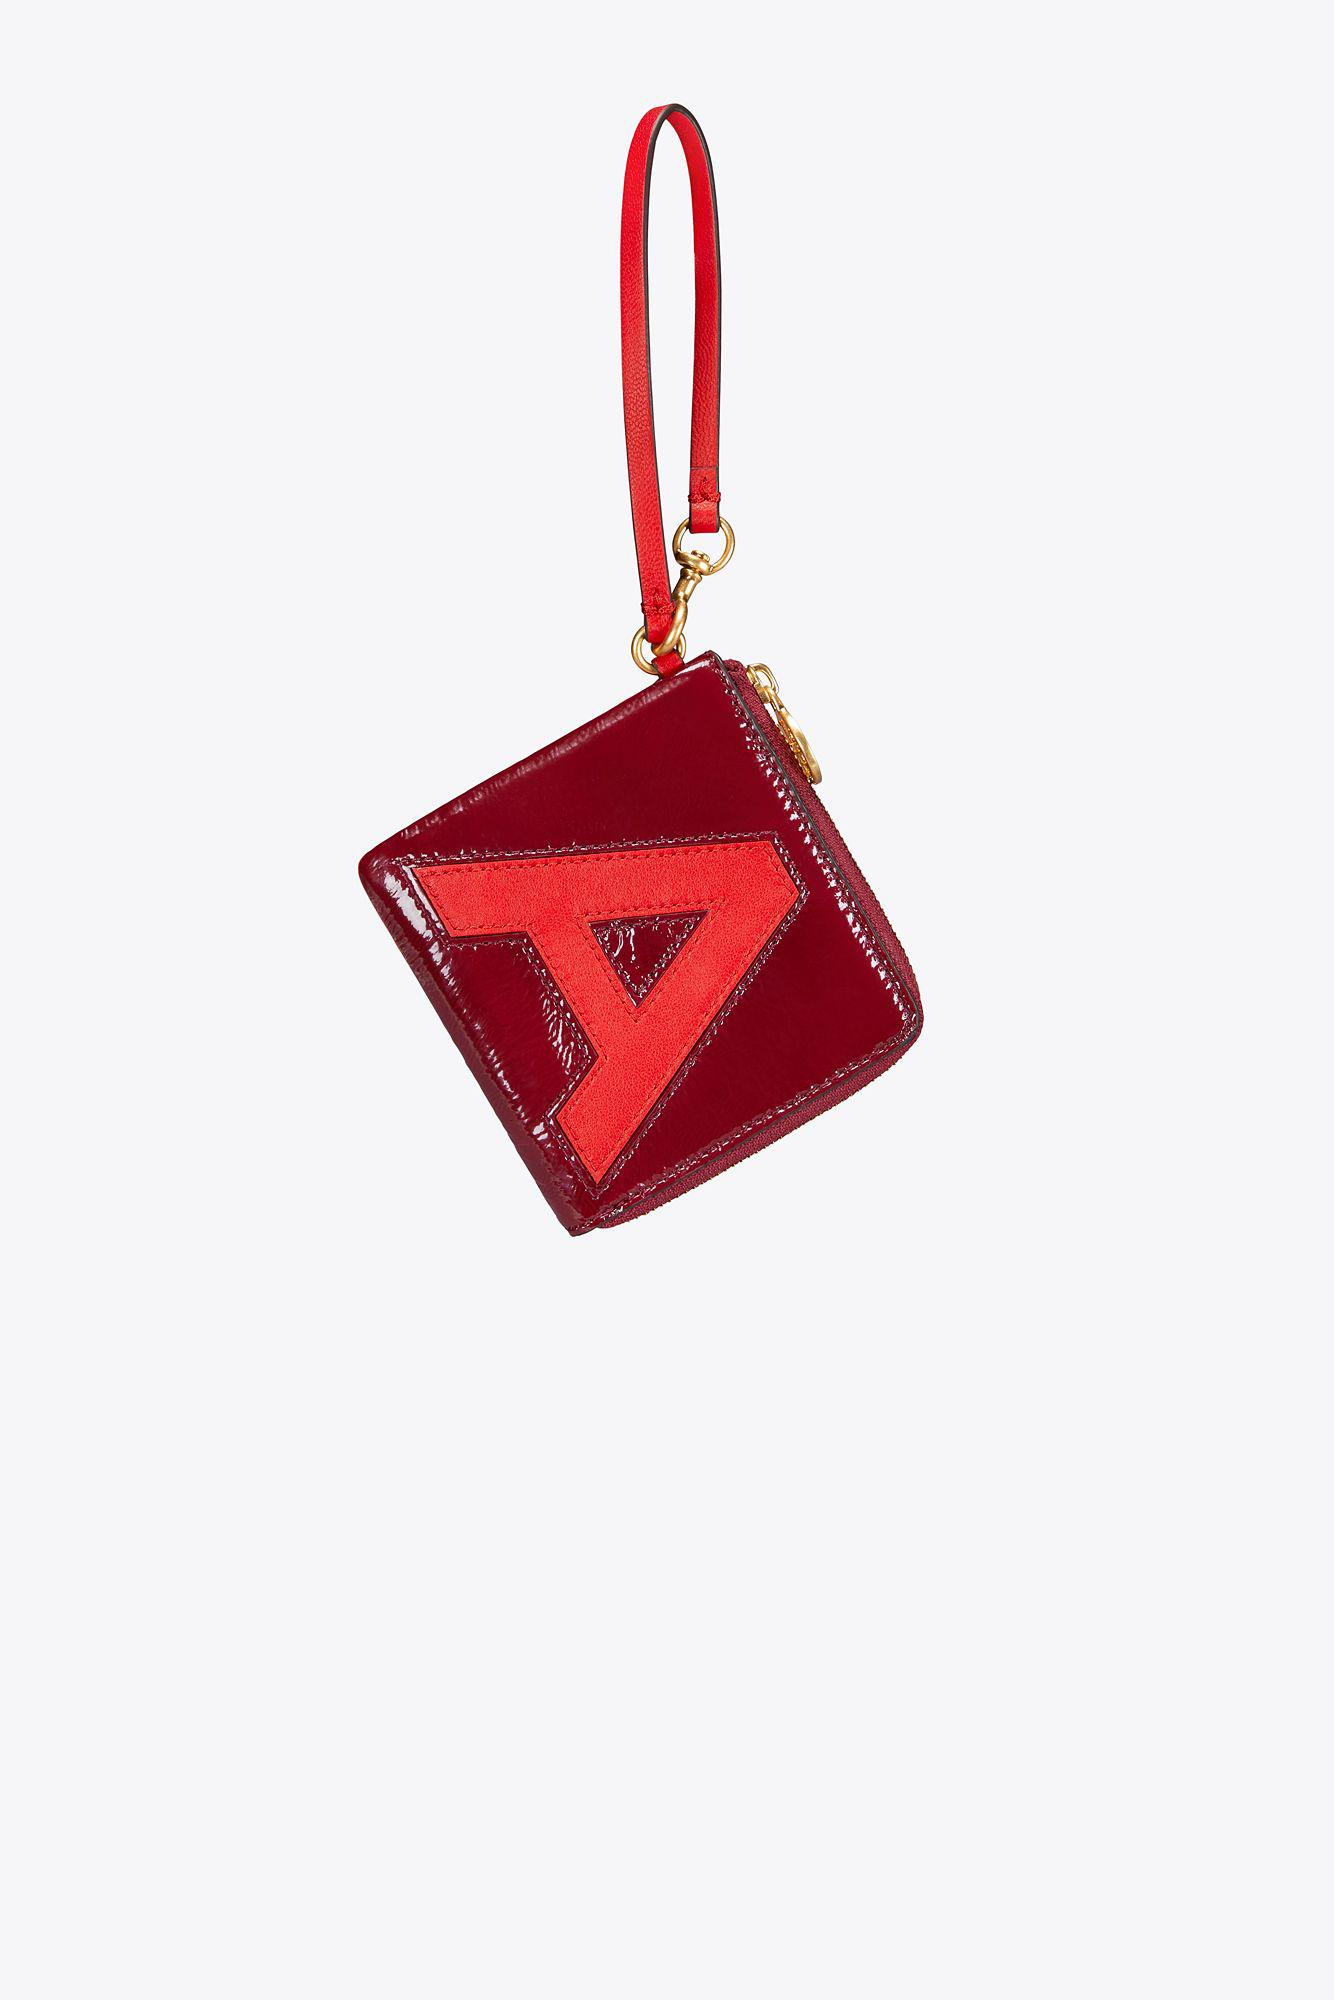 finest selection aa906 06dde Tory Burch Monogram Card Case Key Ring in Red - Lyst